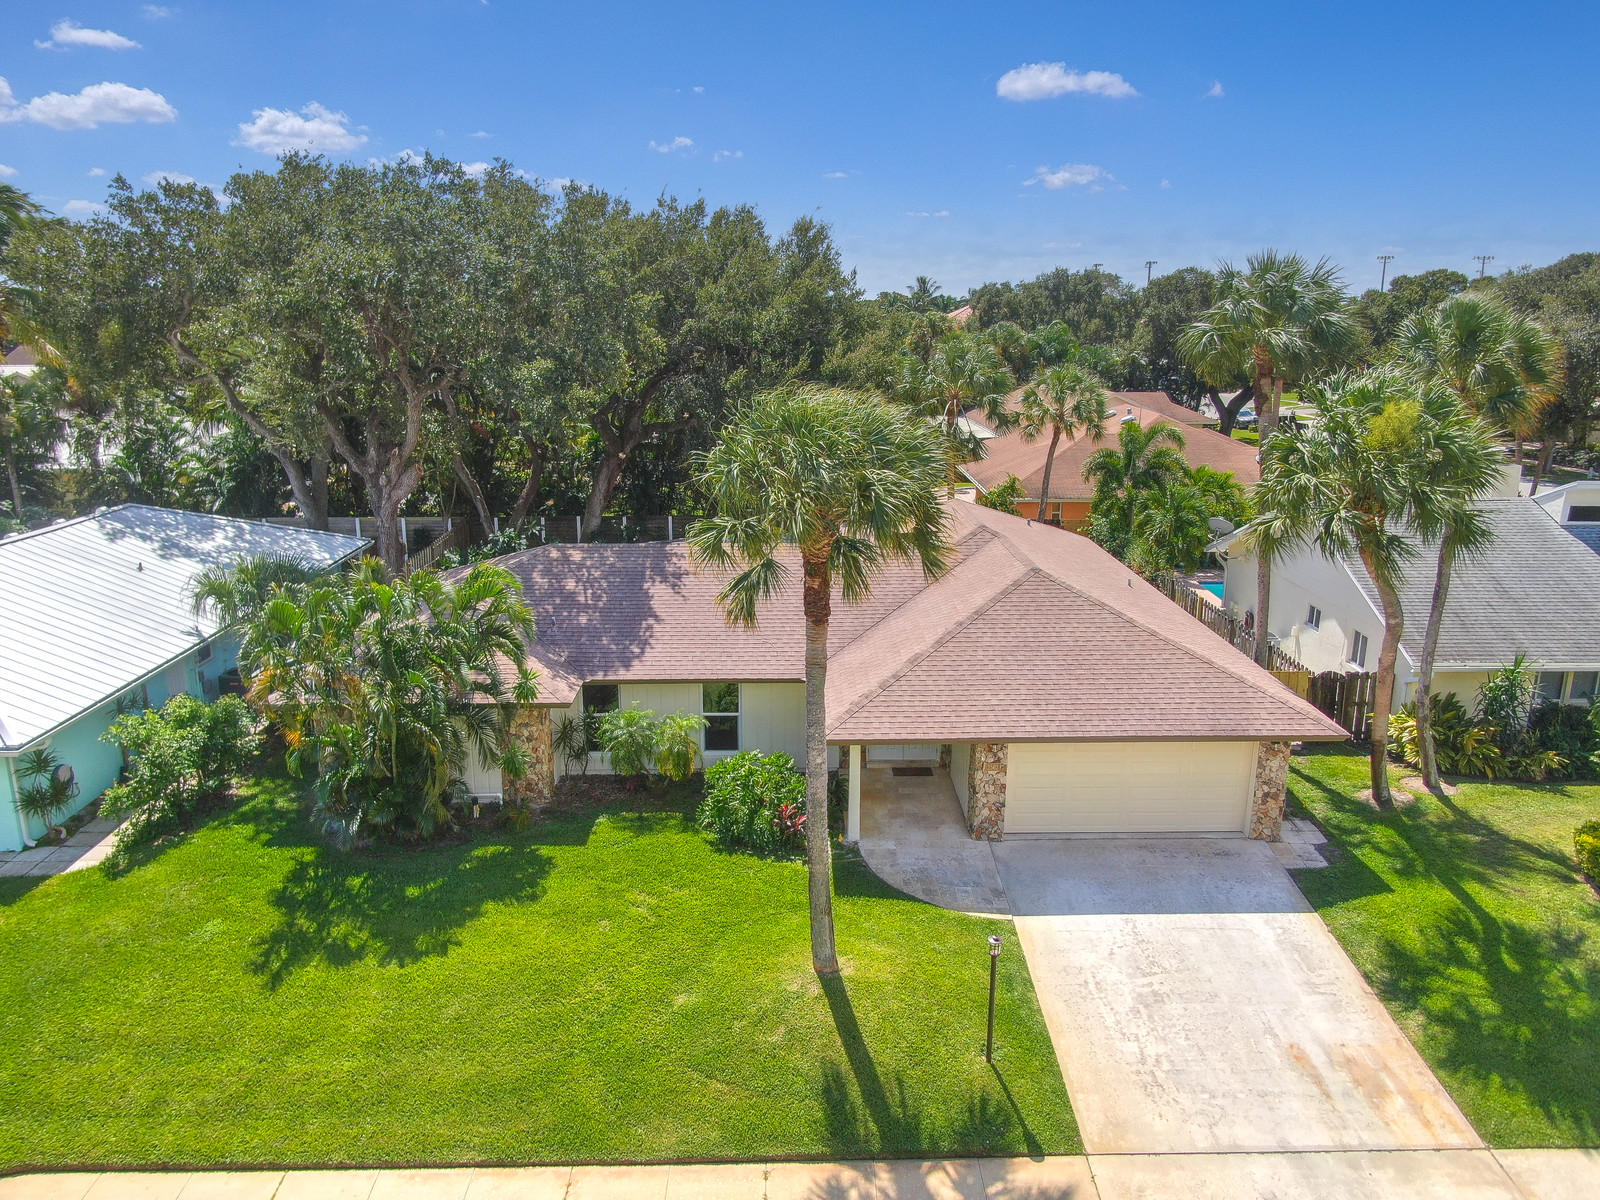 Photo of 2562 Pepperwood Circle, North Palm Beach, FL 33410